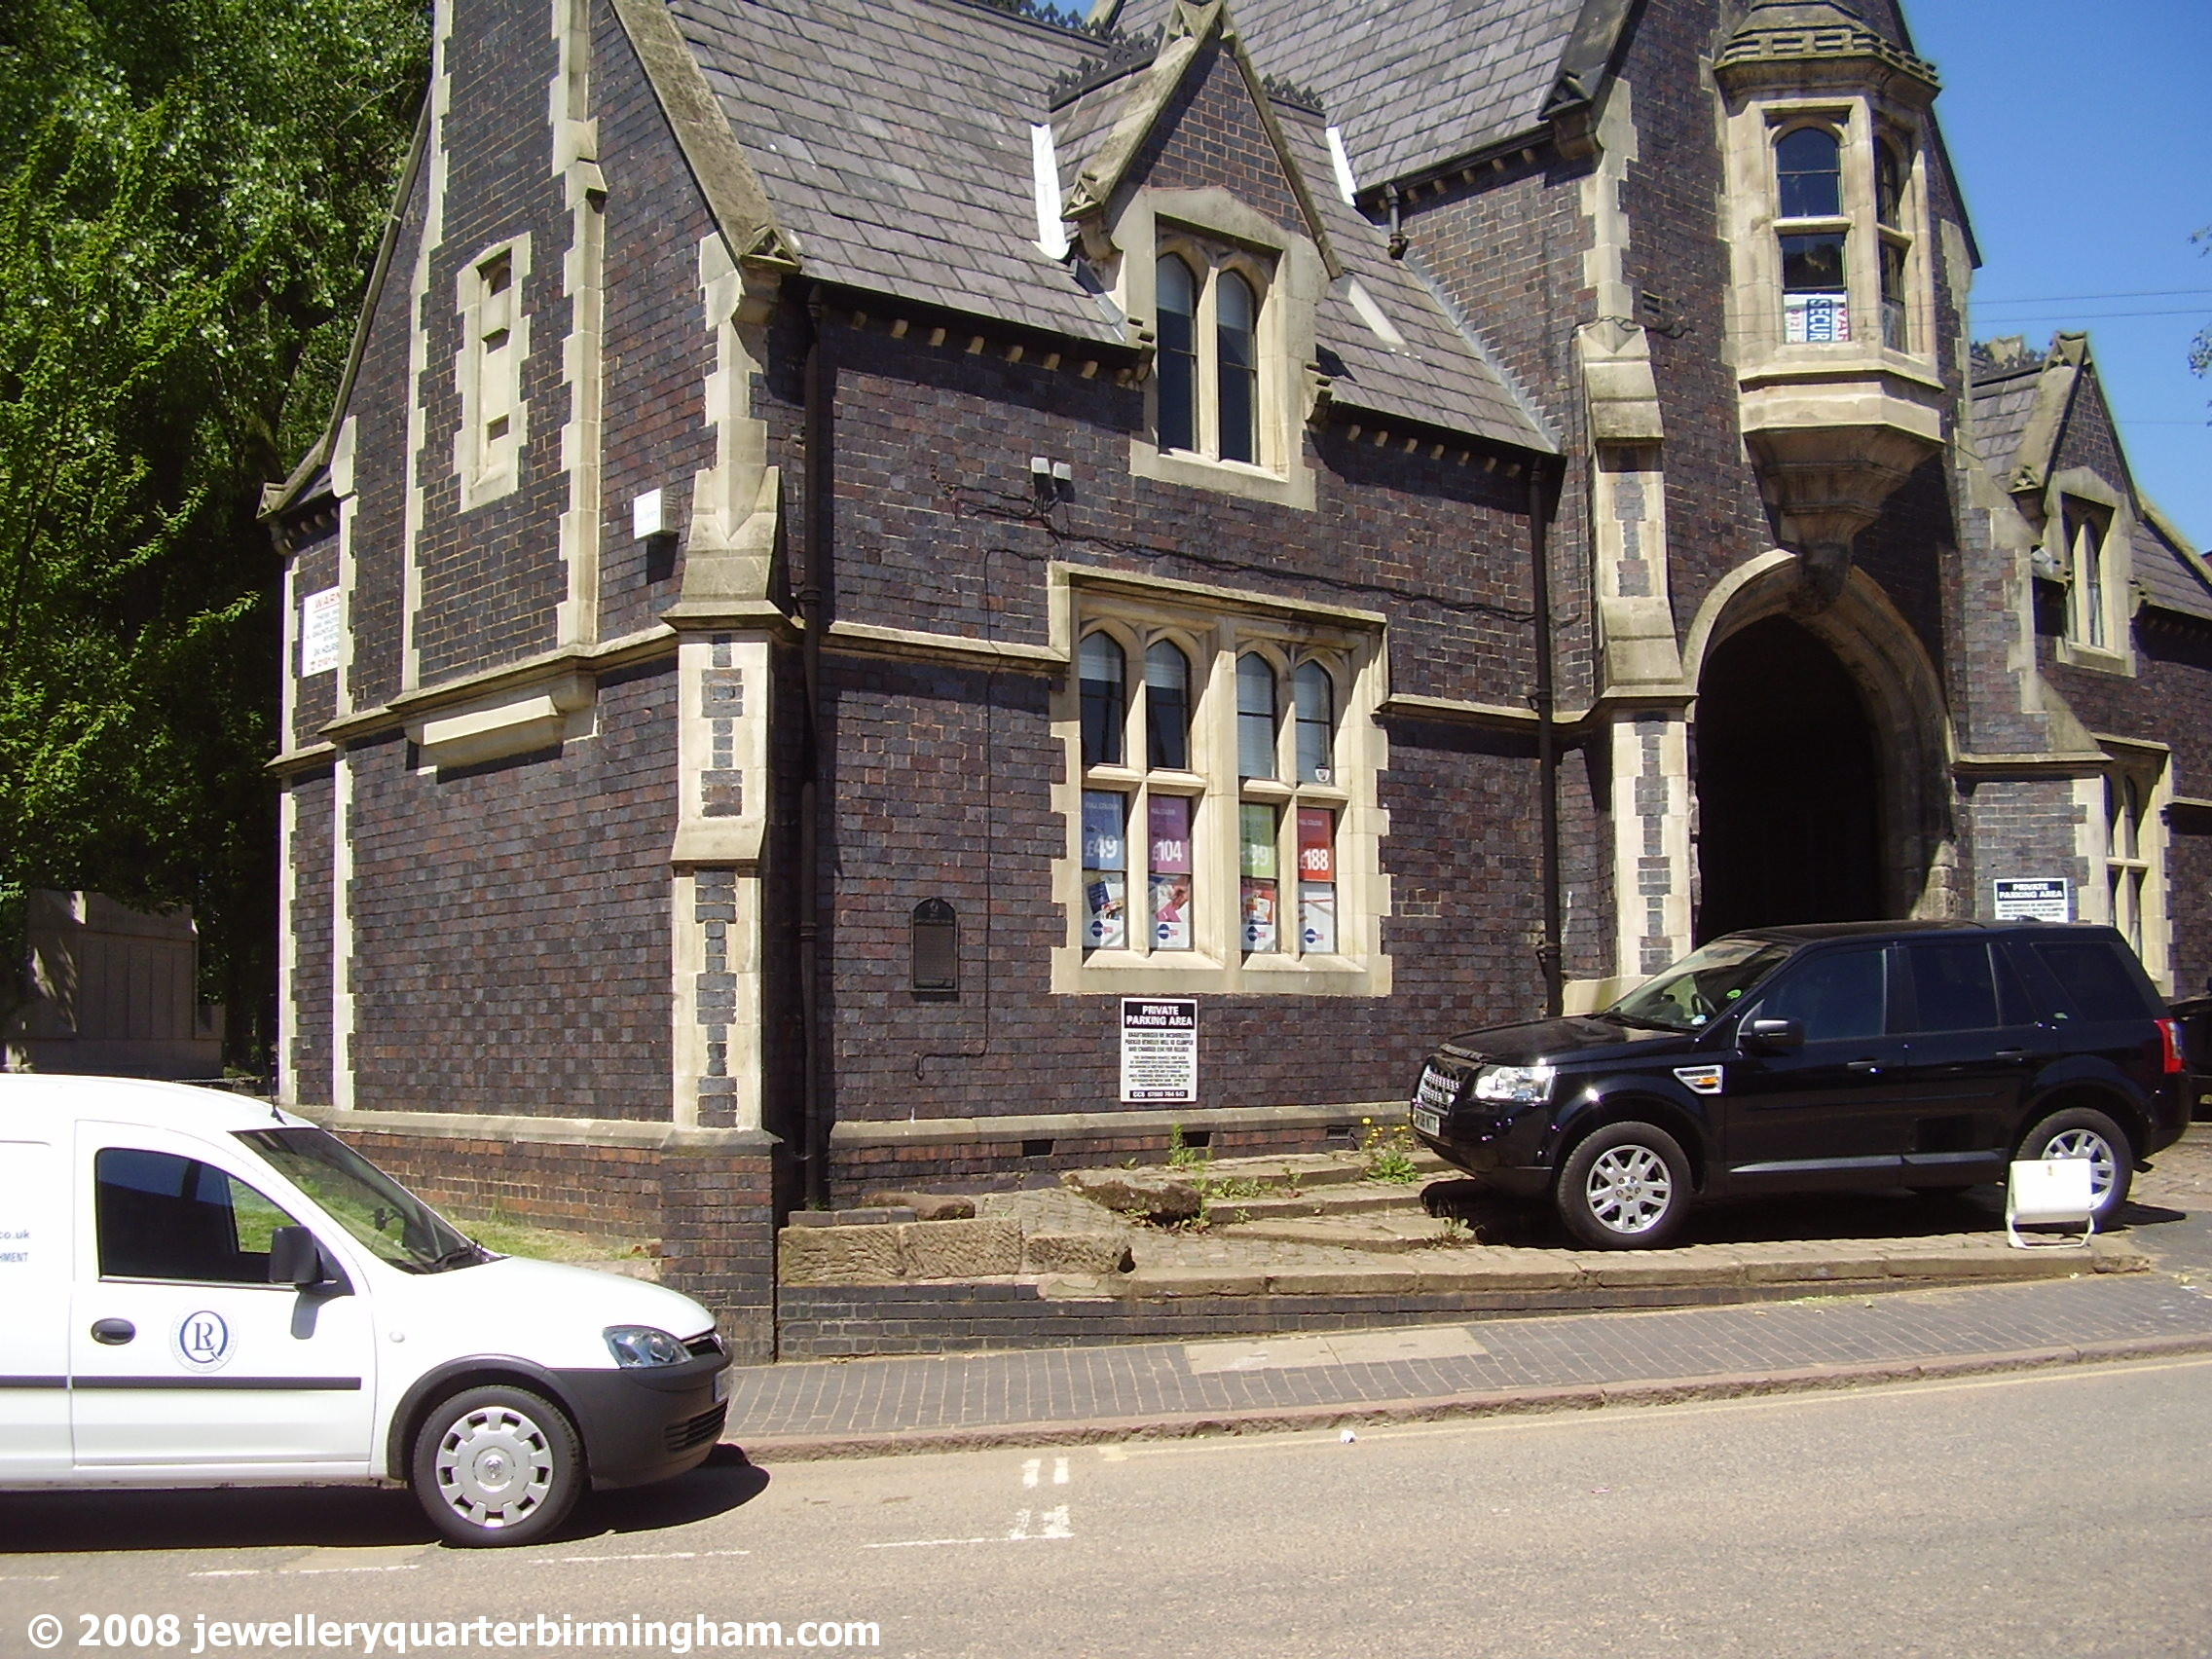 Offices-in-front-of-Mint-Cemetery-in-Warstone-Lane.jpg 2008